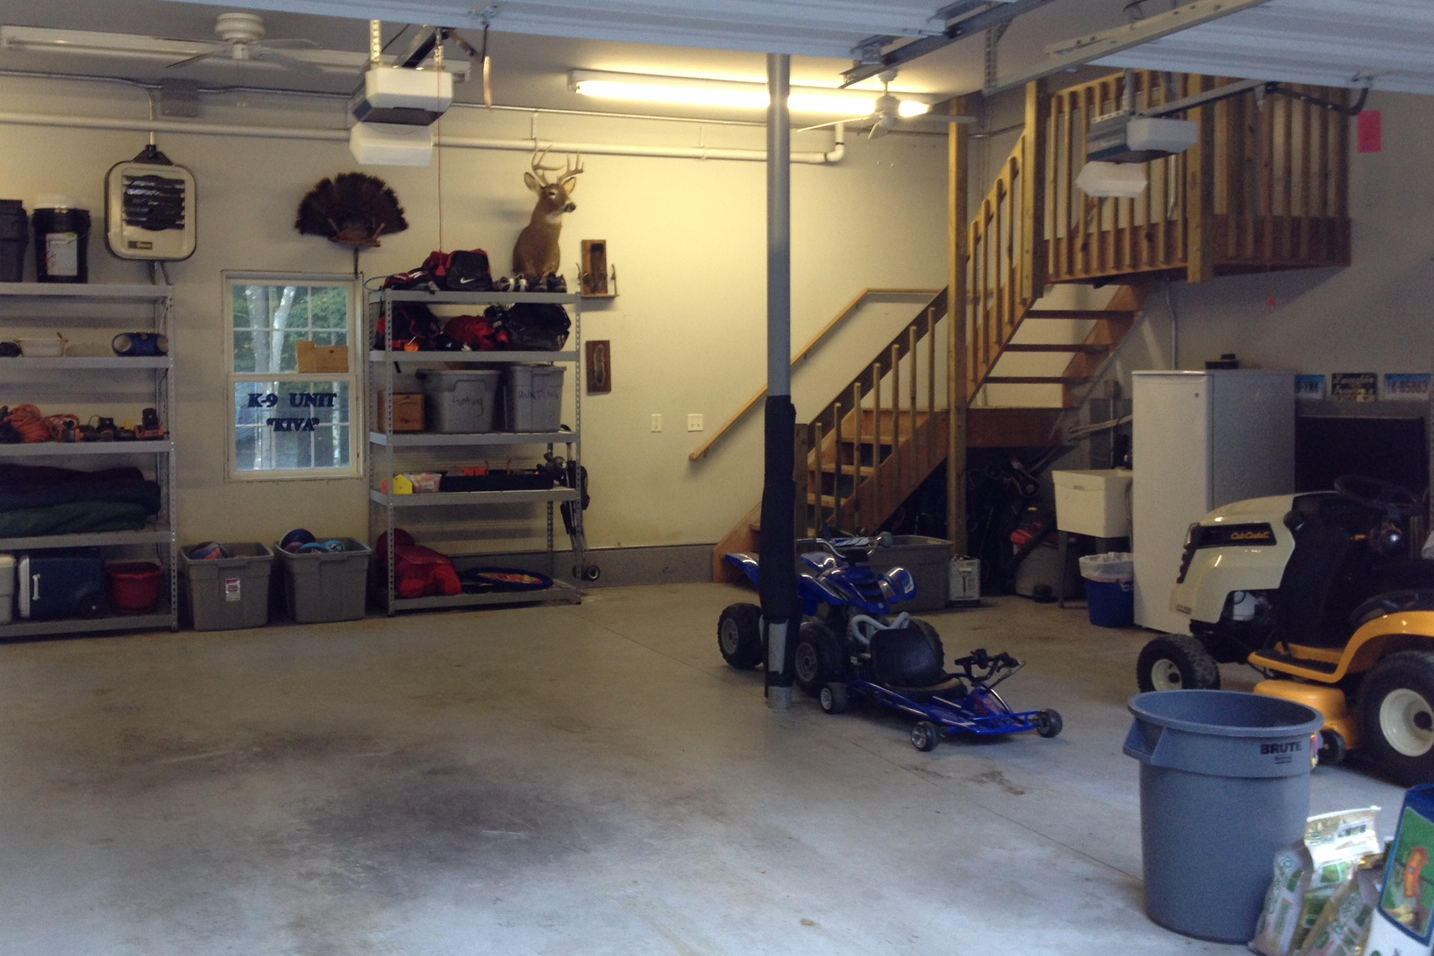 The garage after! All organized and ready for cars to be parked in it.